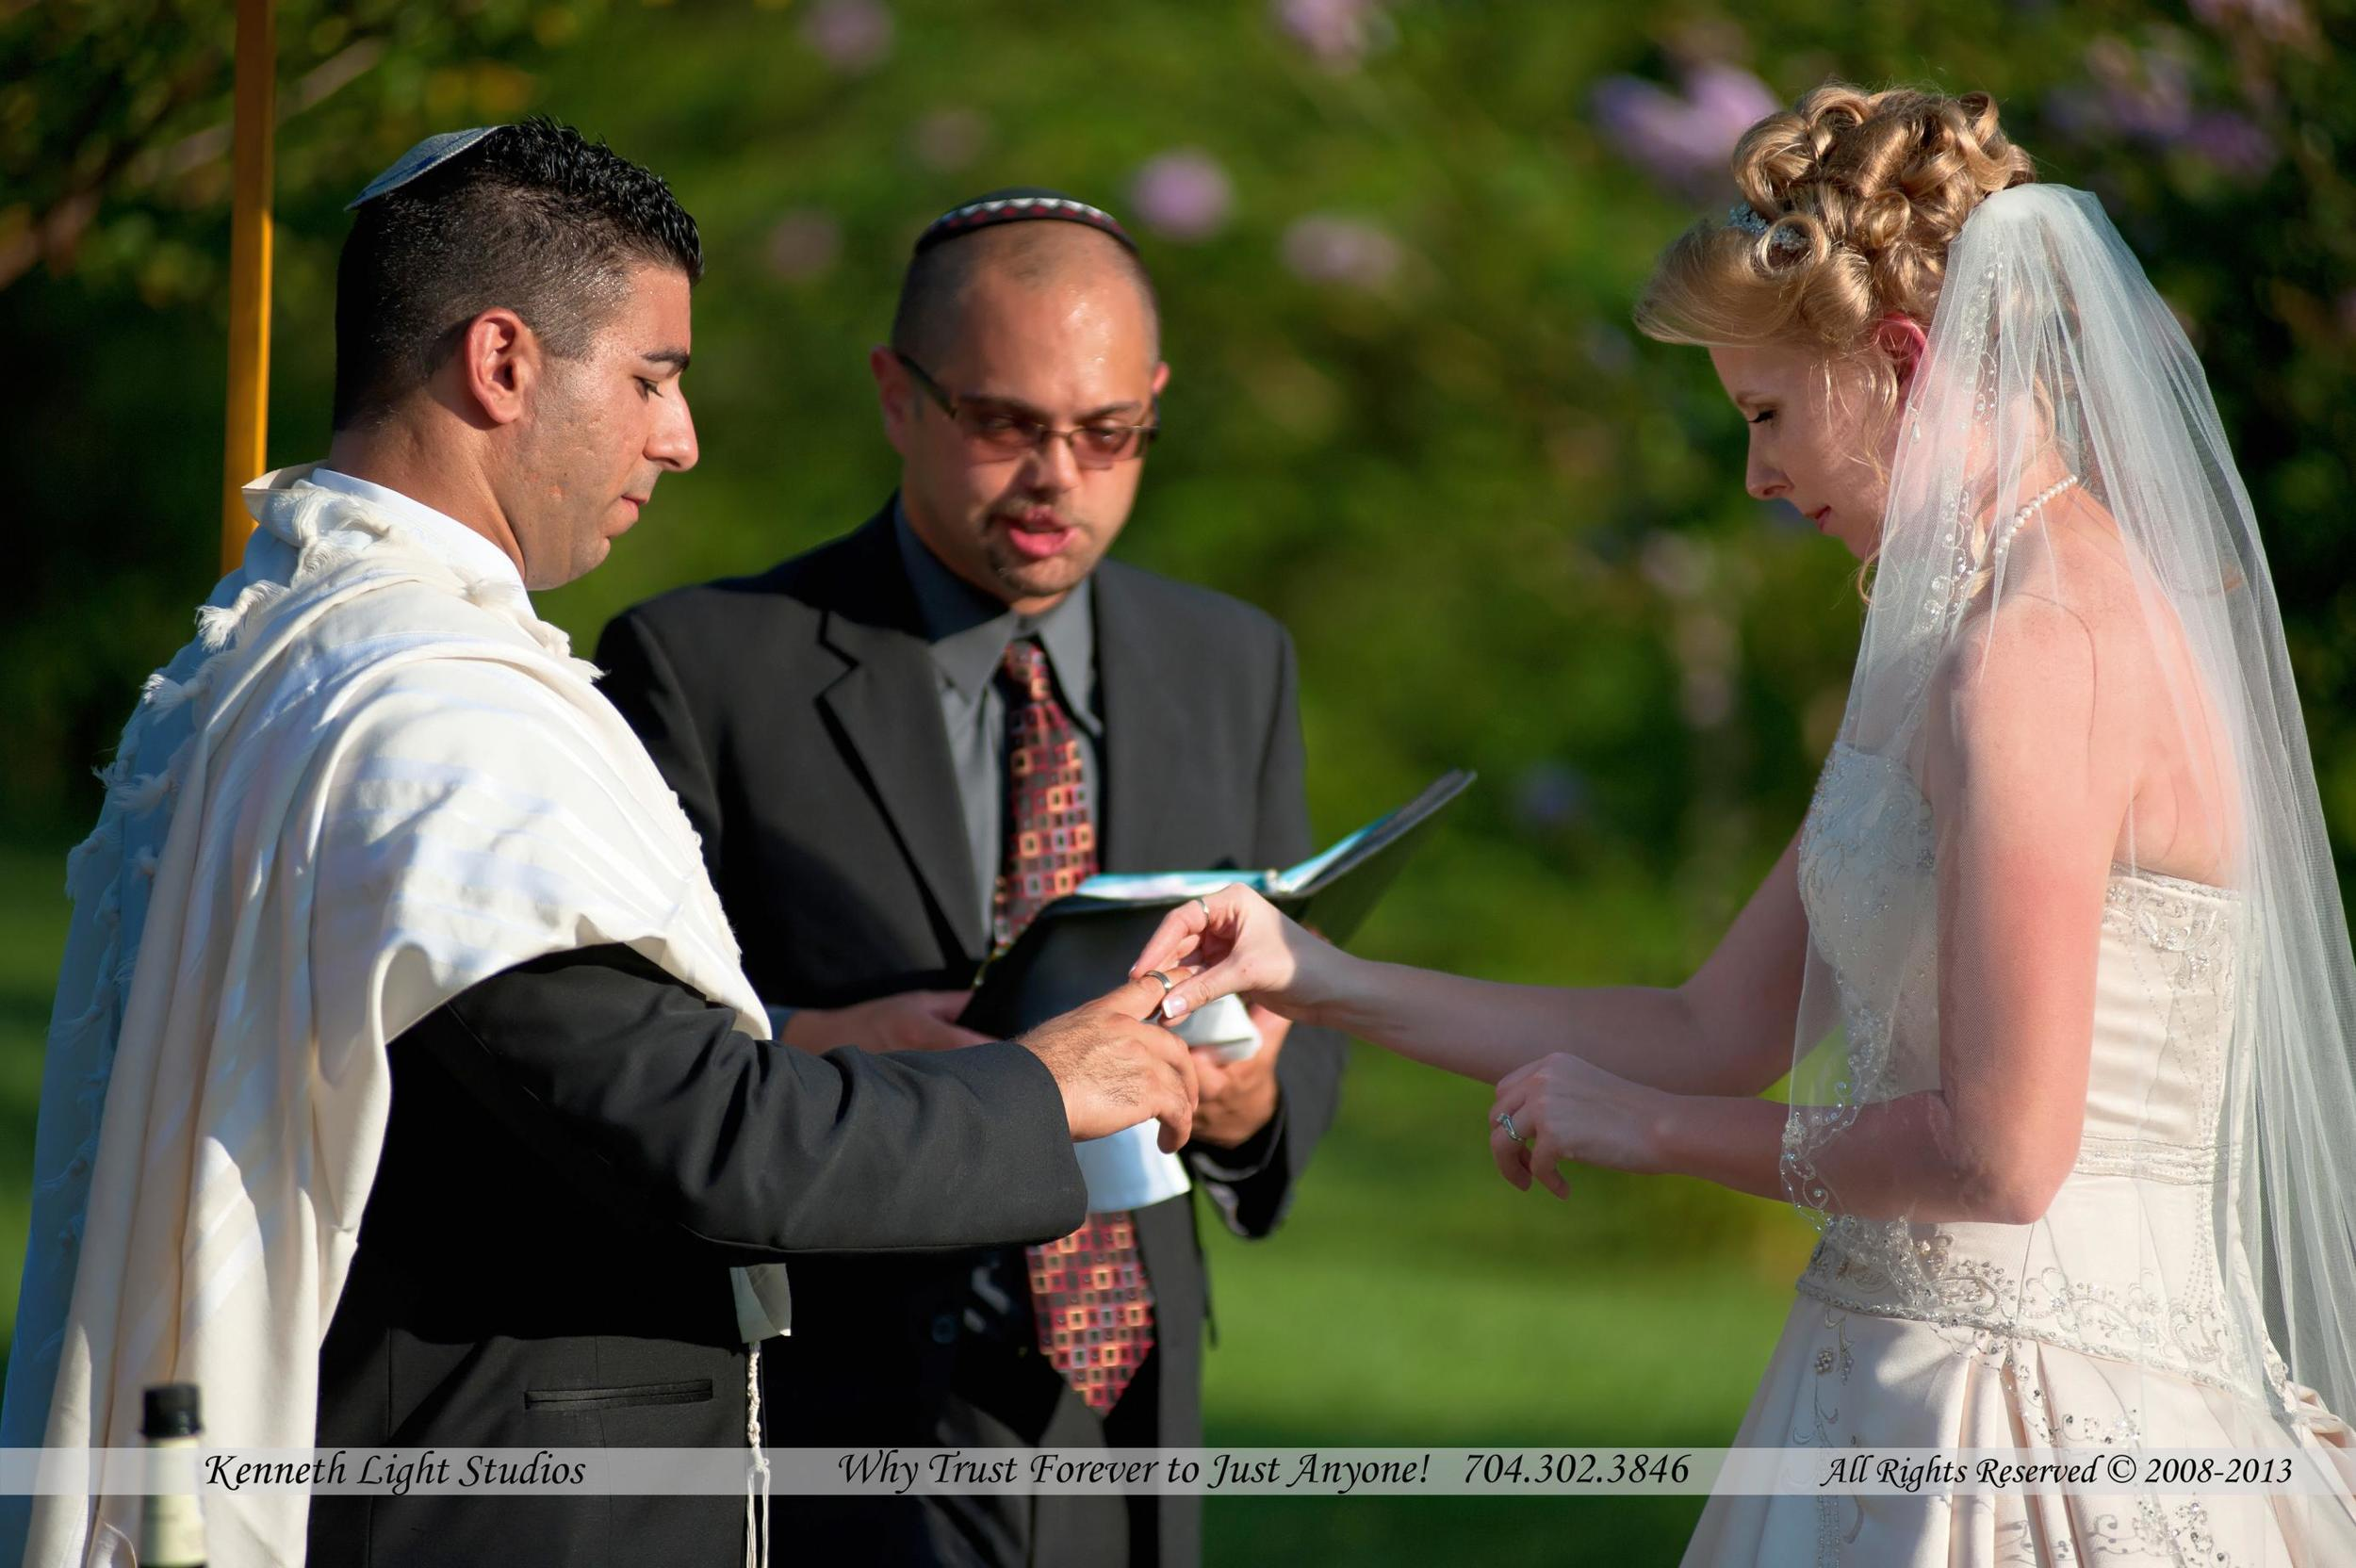 A Jewish Wedding, semi traditional, watch the ring going on the other fingers, by Kenneth Light Studios